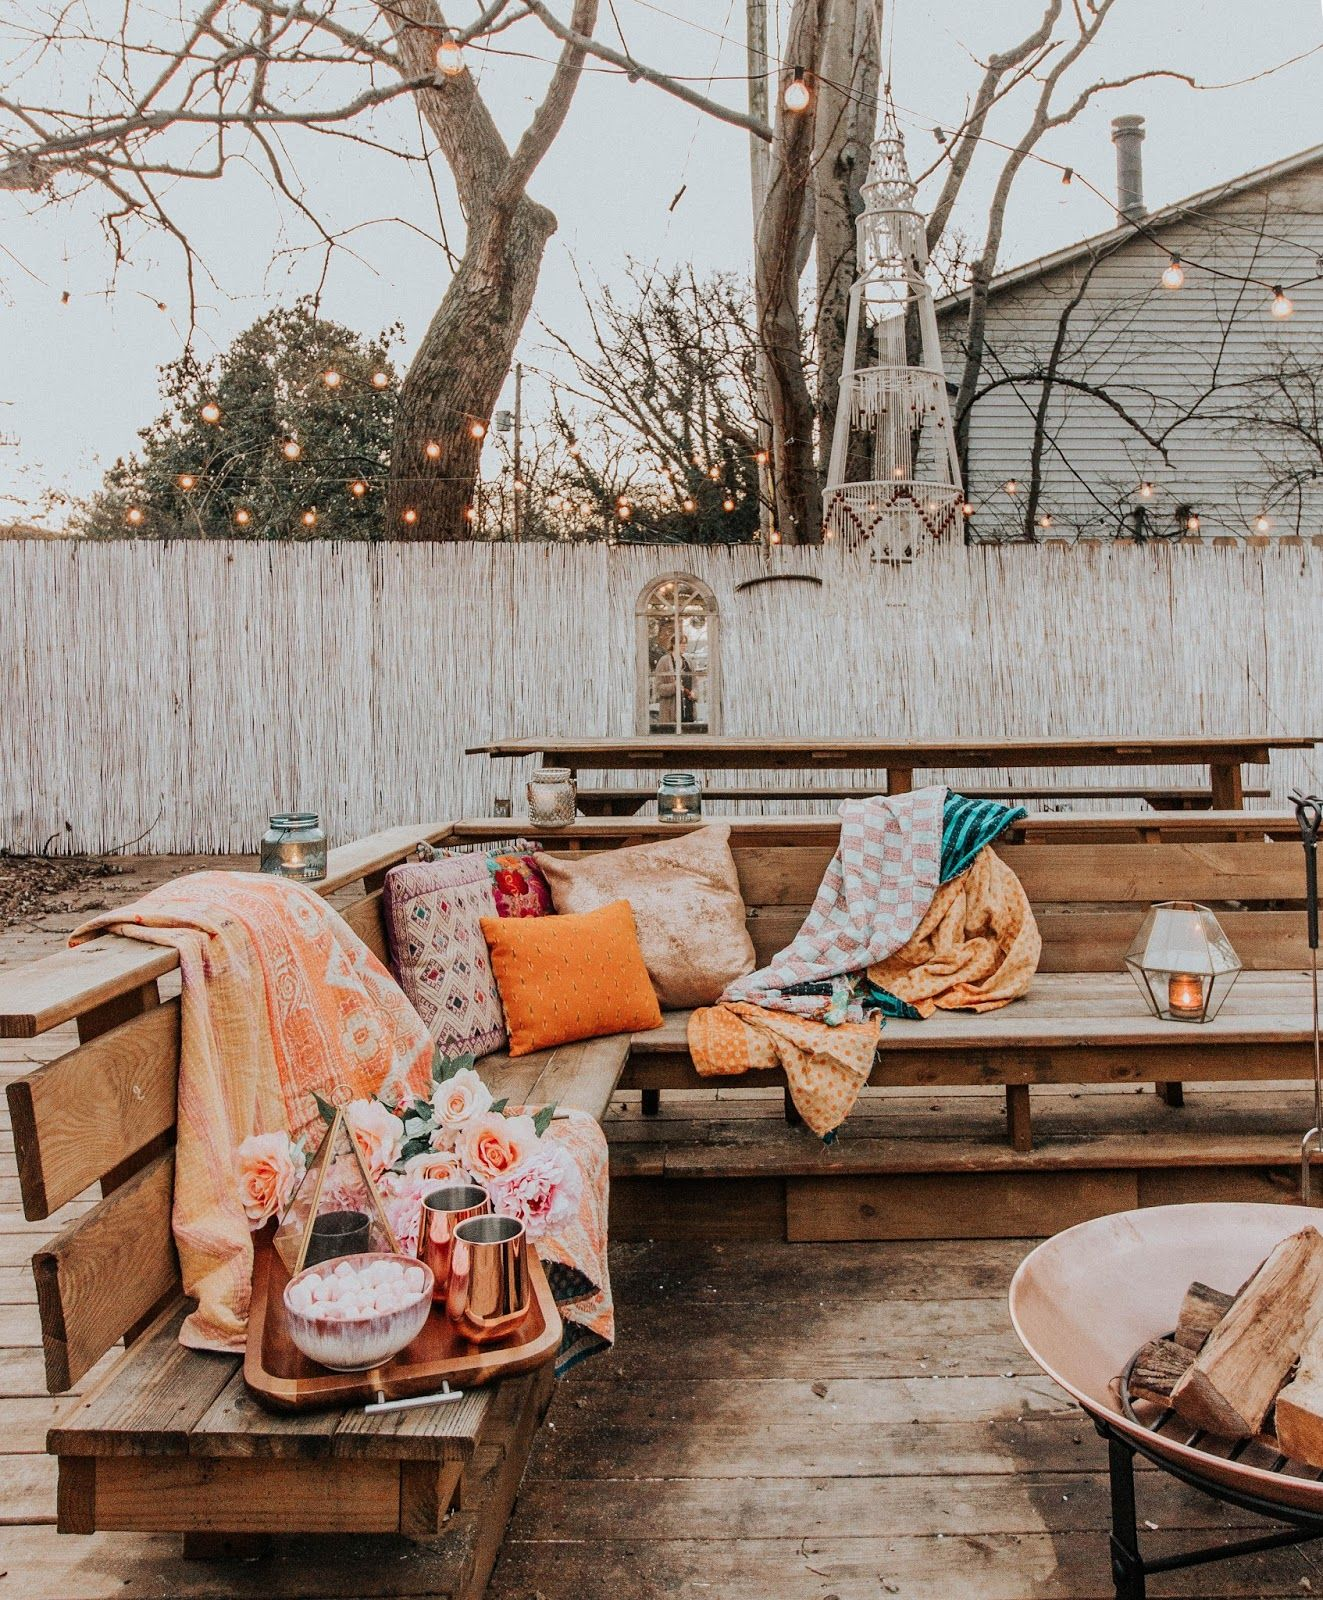 5 Tips On Creating Cozy (Hygge) In 2020